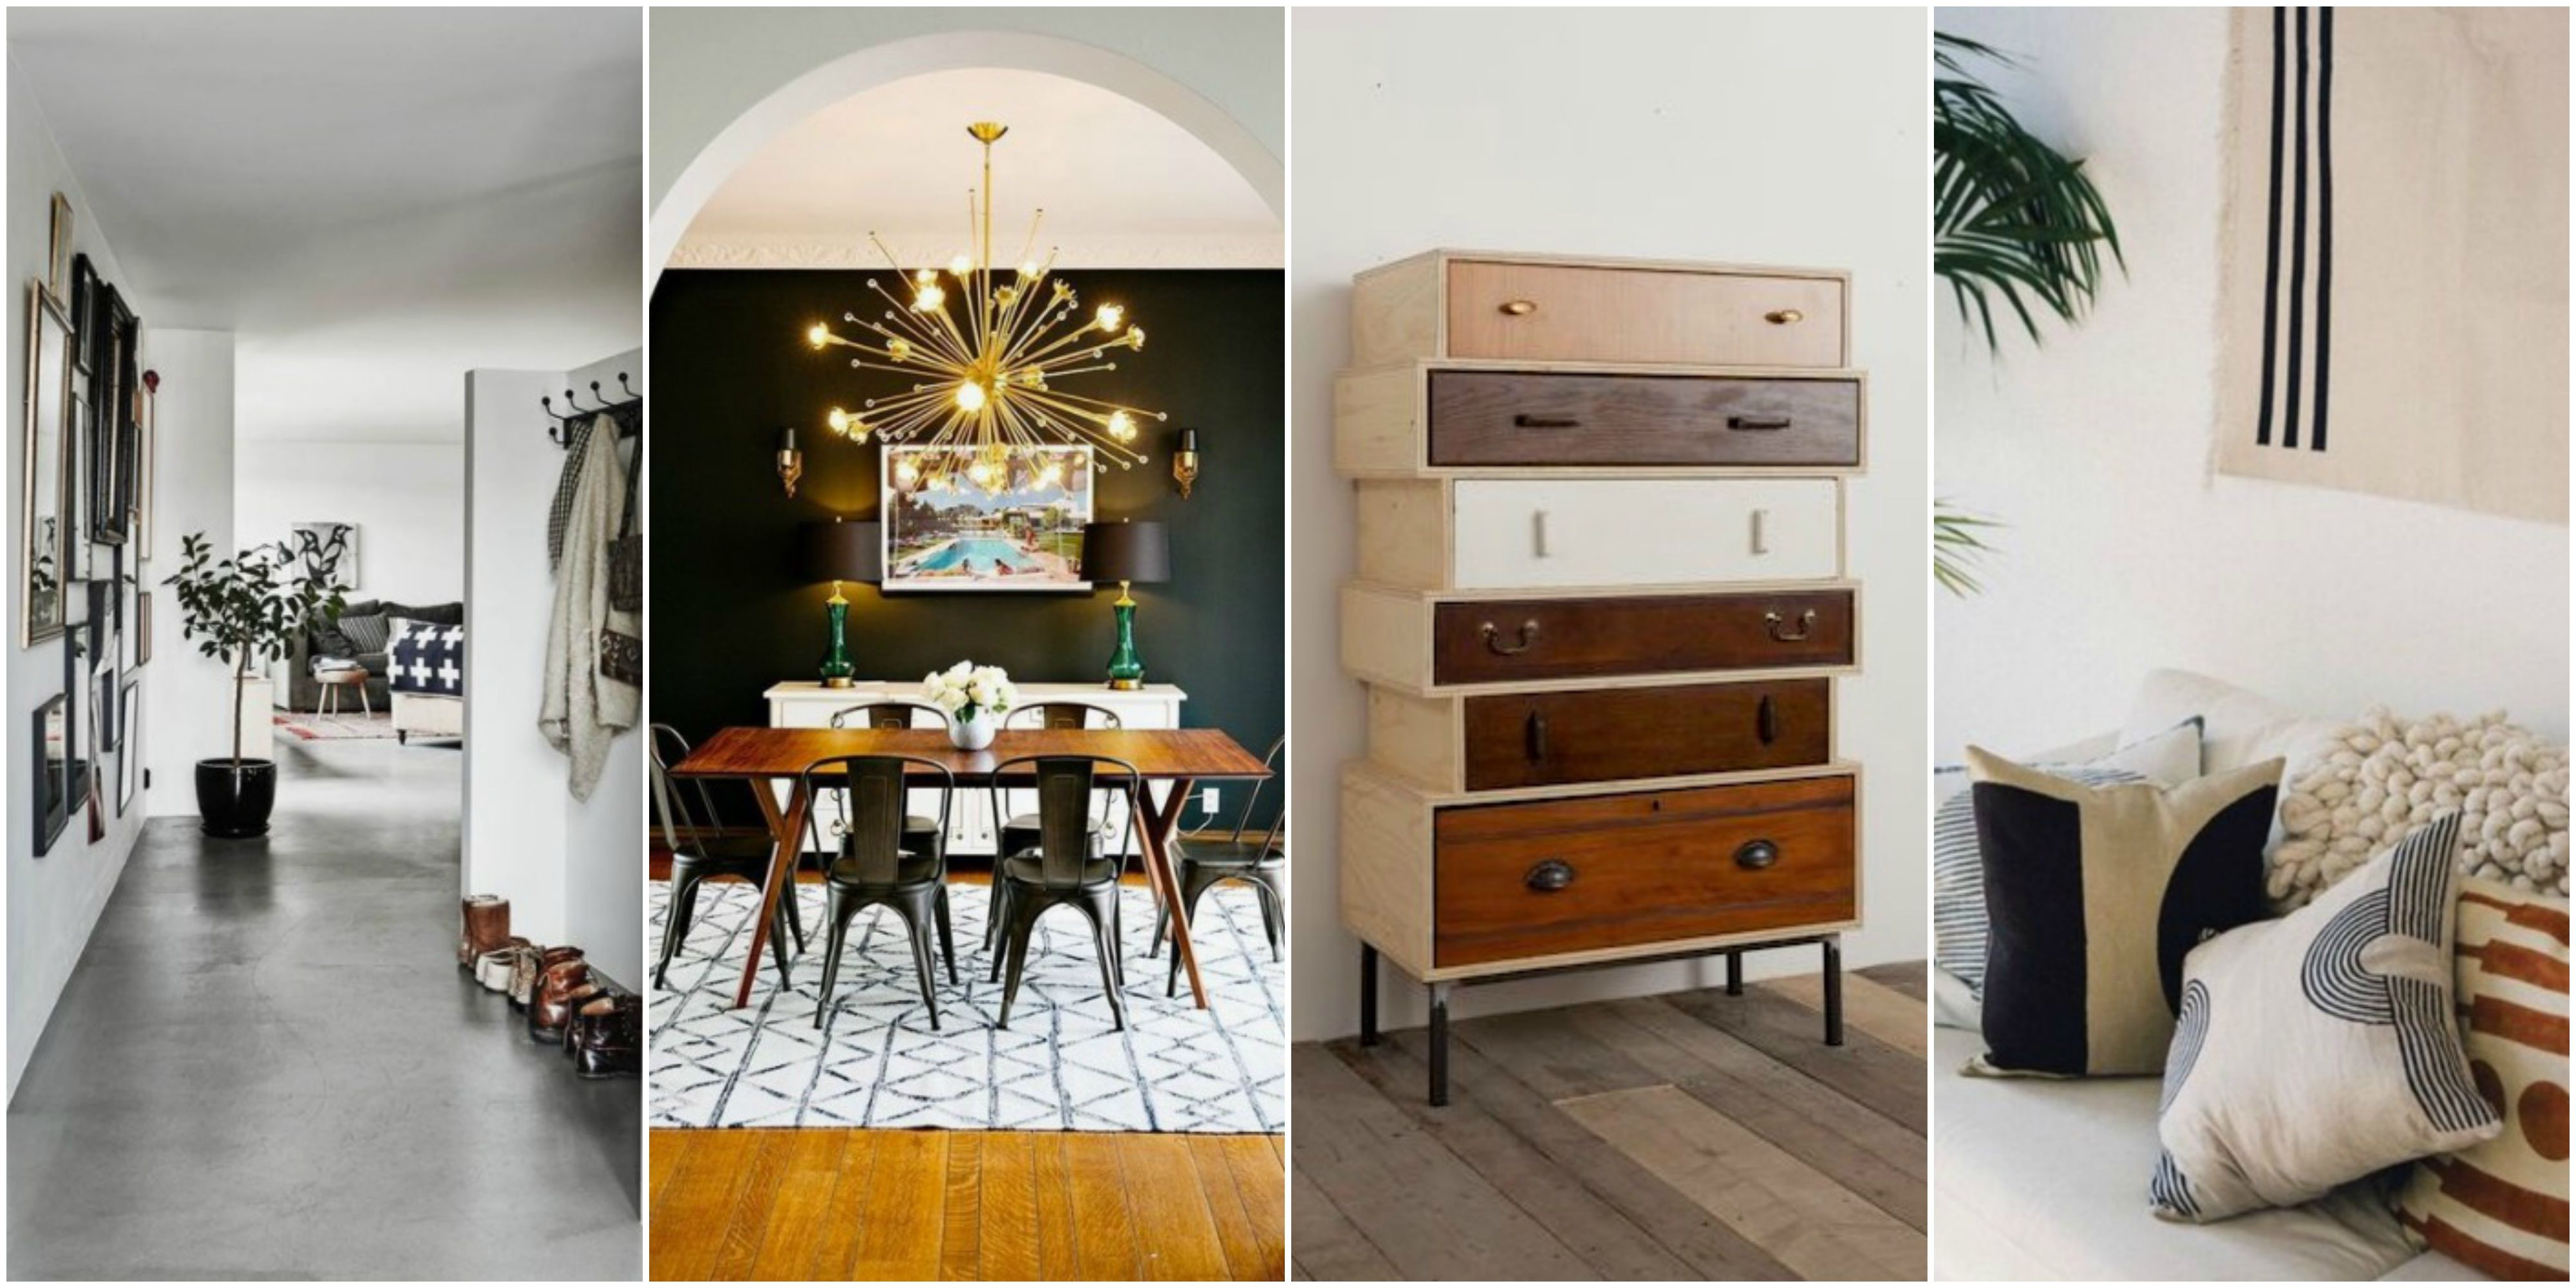 18 Quirky Interior Trends For The Year So Far, According To The Pinterest  Home Report